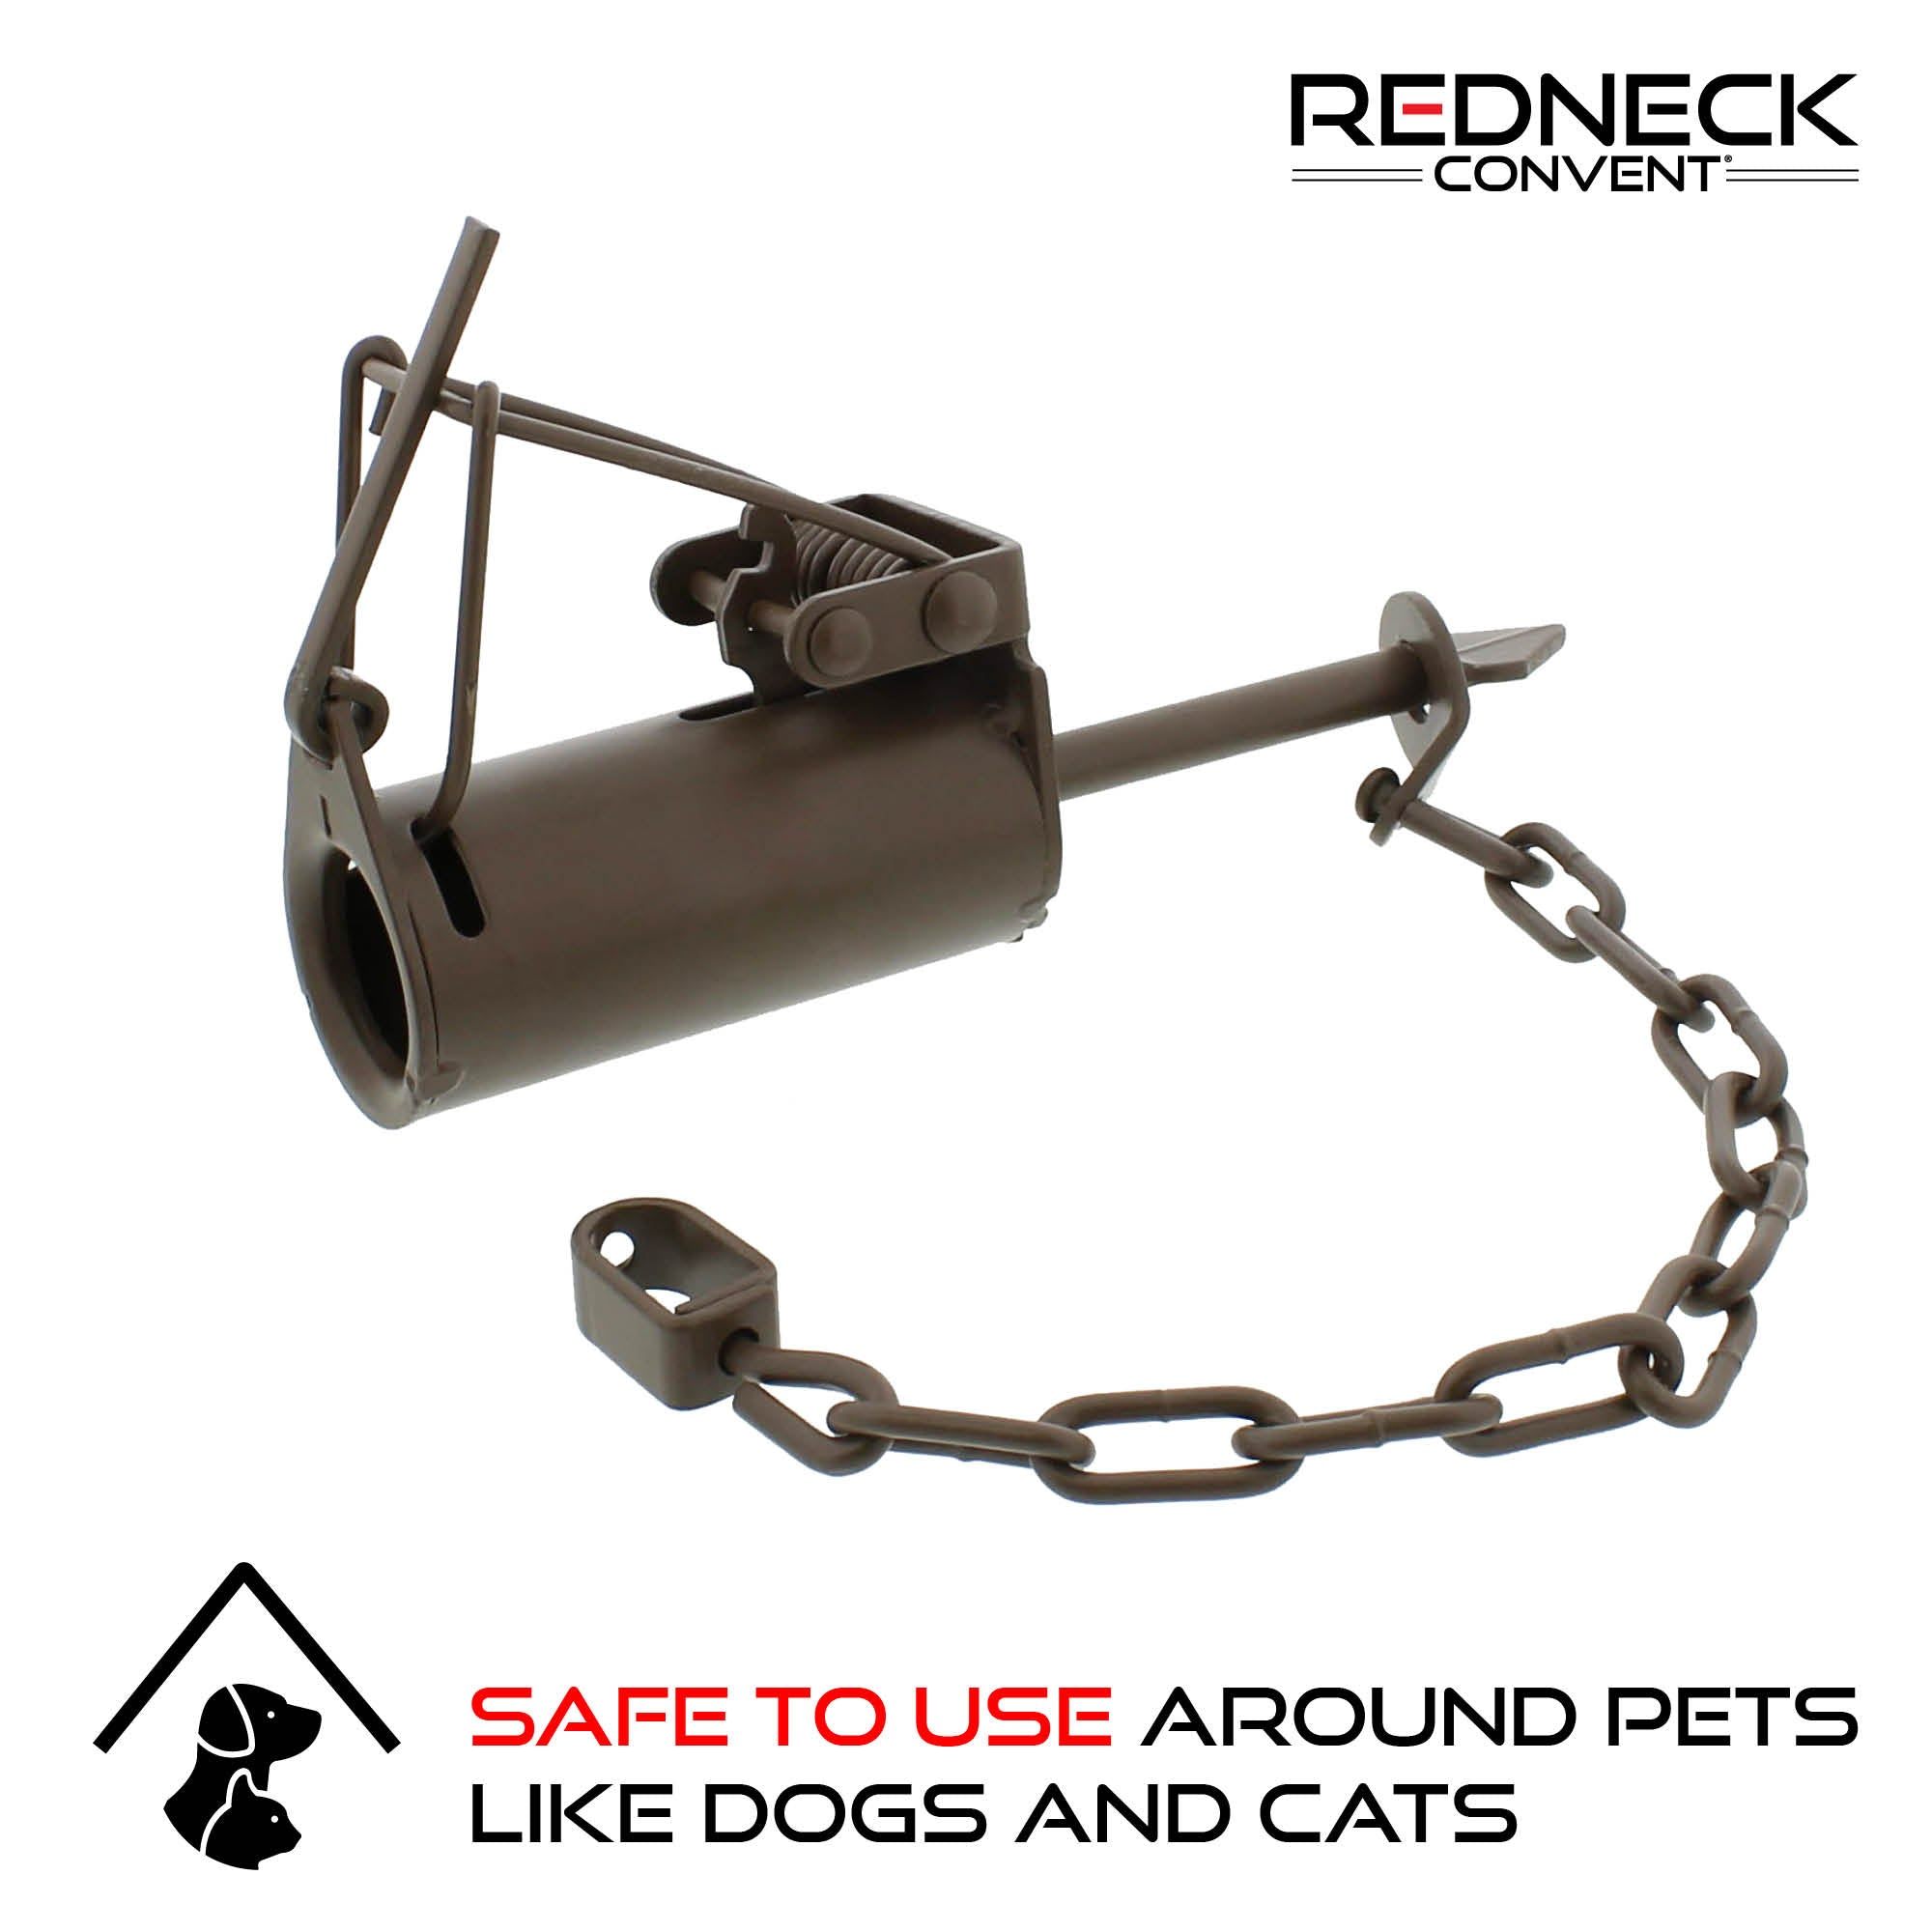 Dog-Proof DP Animal Leg Trap 1-Pack, Pet-Safe / Pet-Friendly